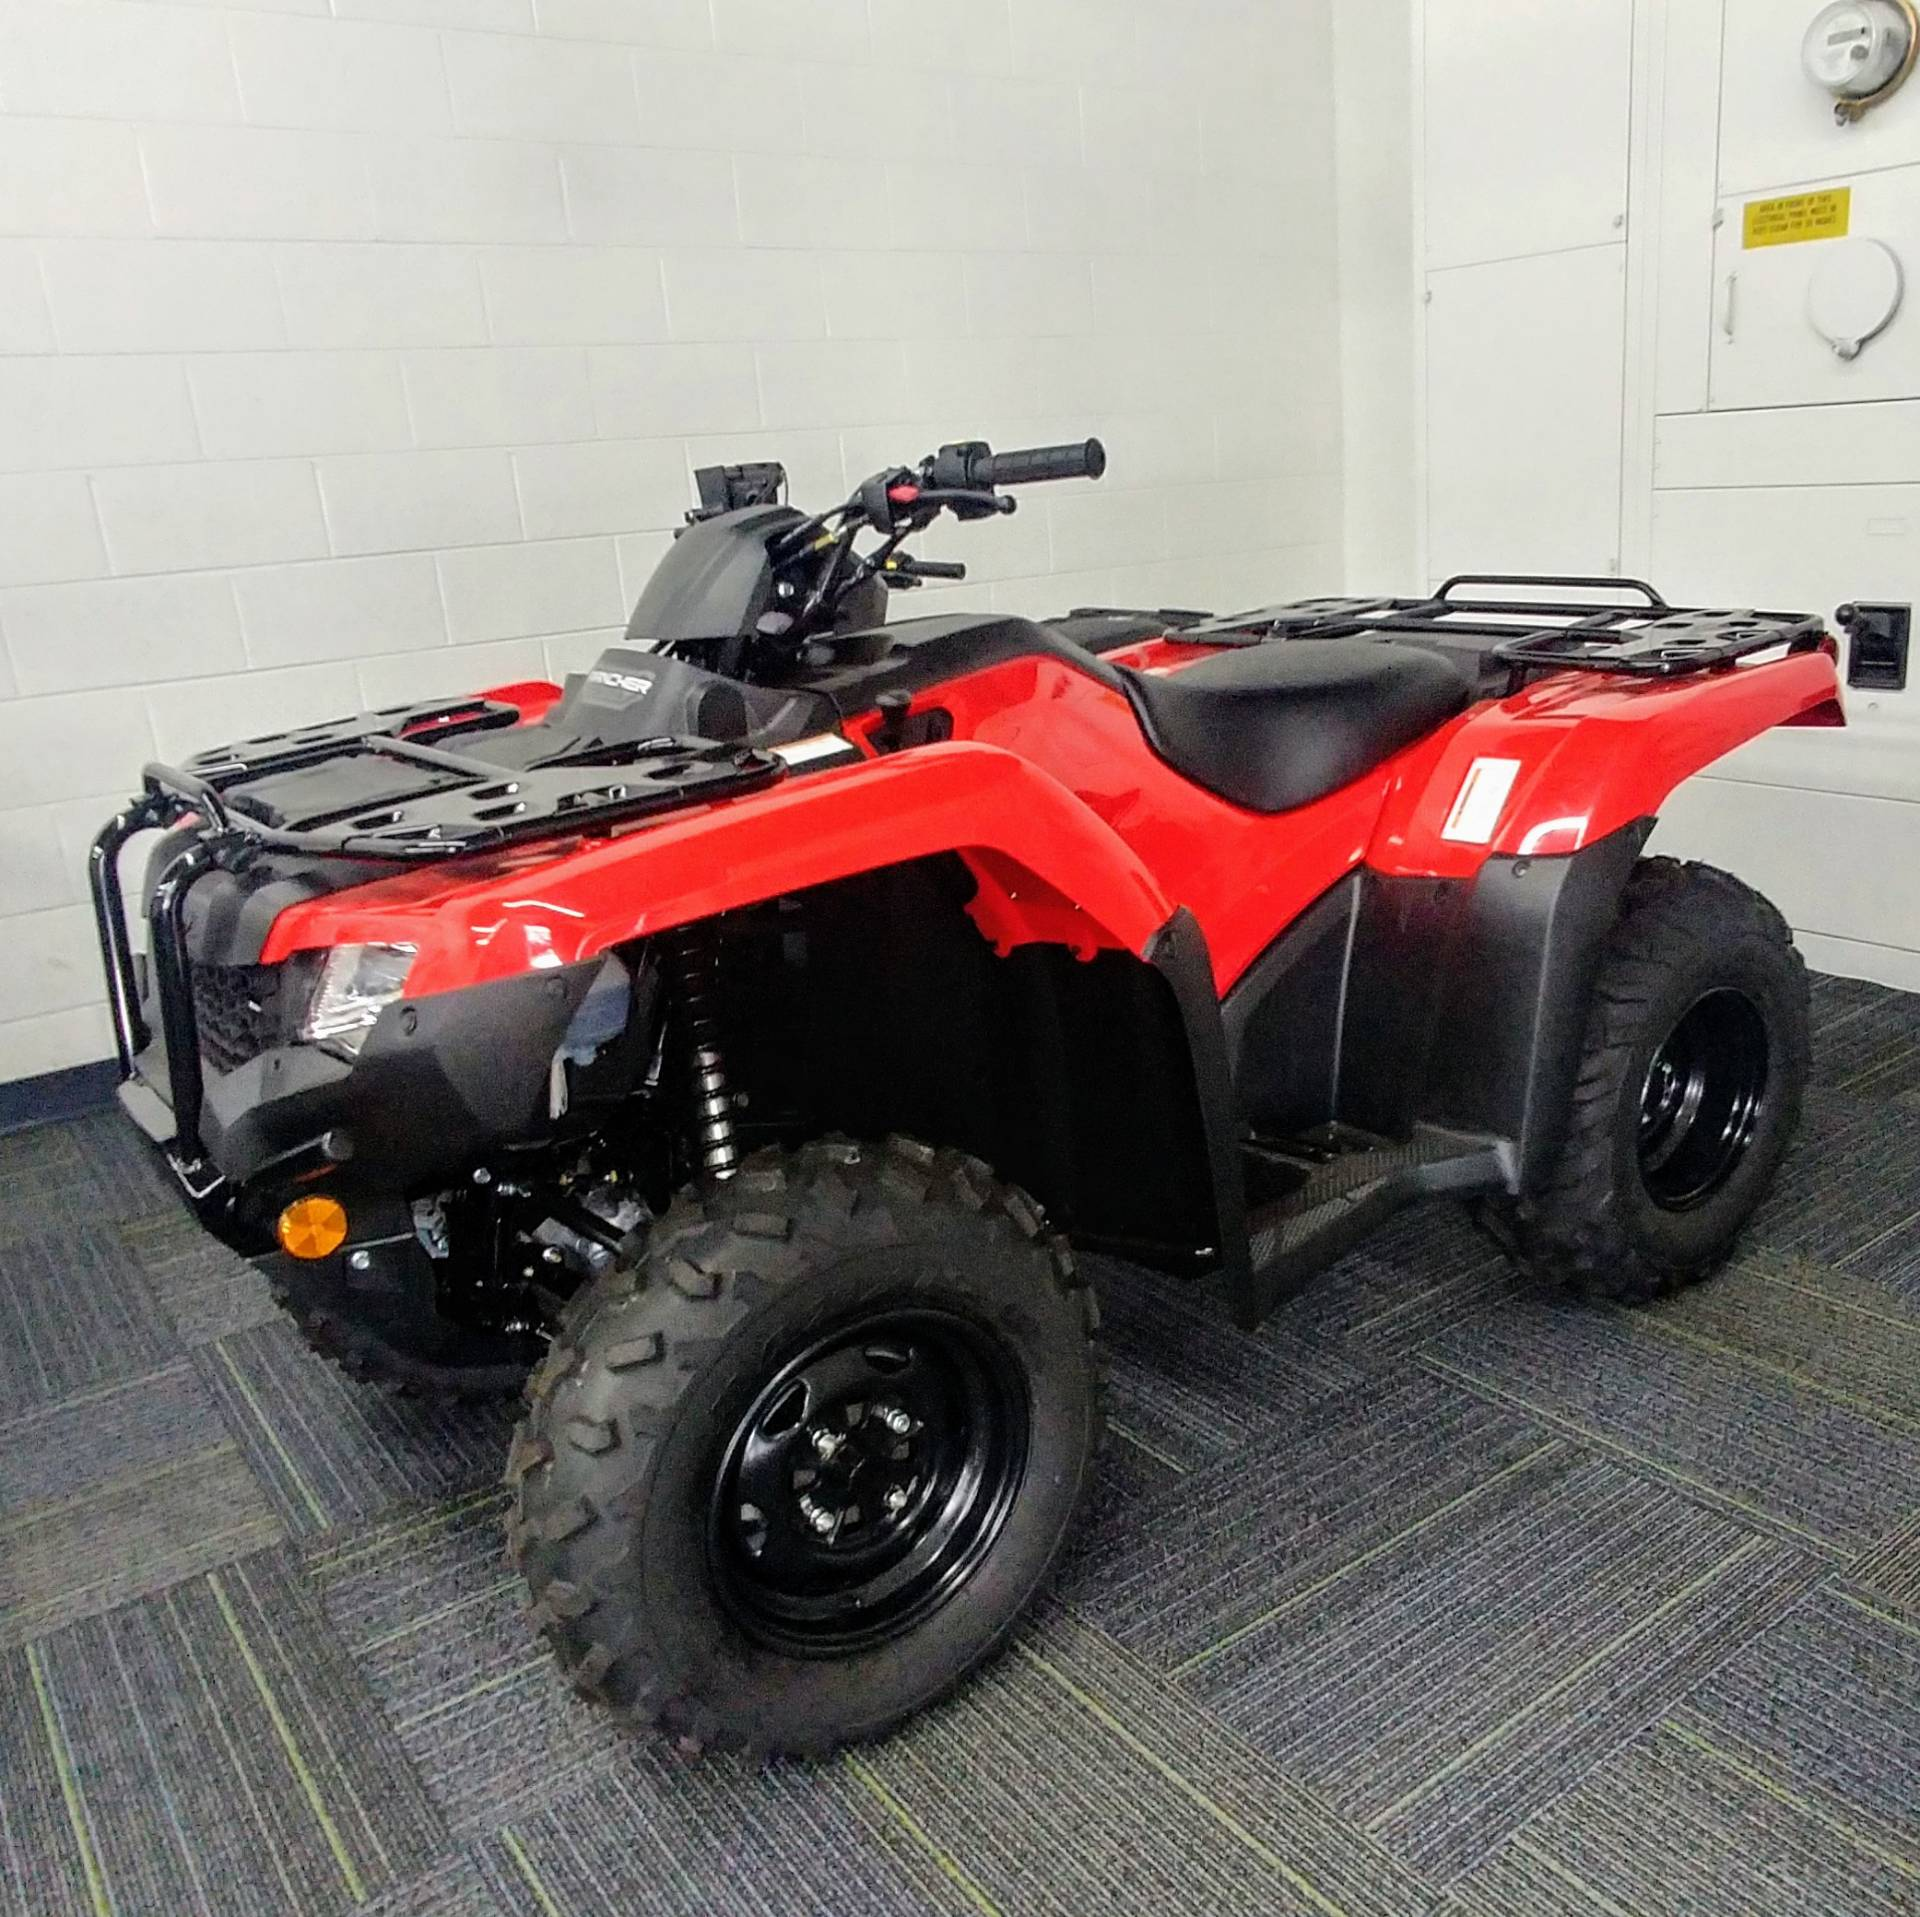 2020 Honda FourTrax Rancher 4x4 in Ontario, California - Photo 2